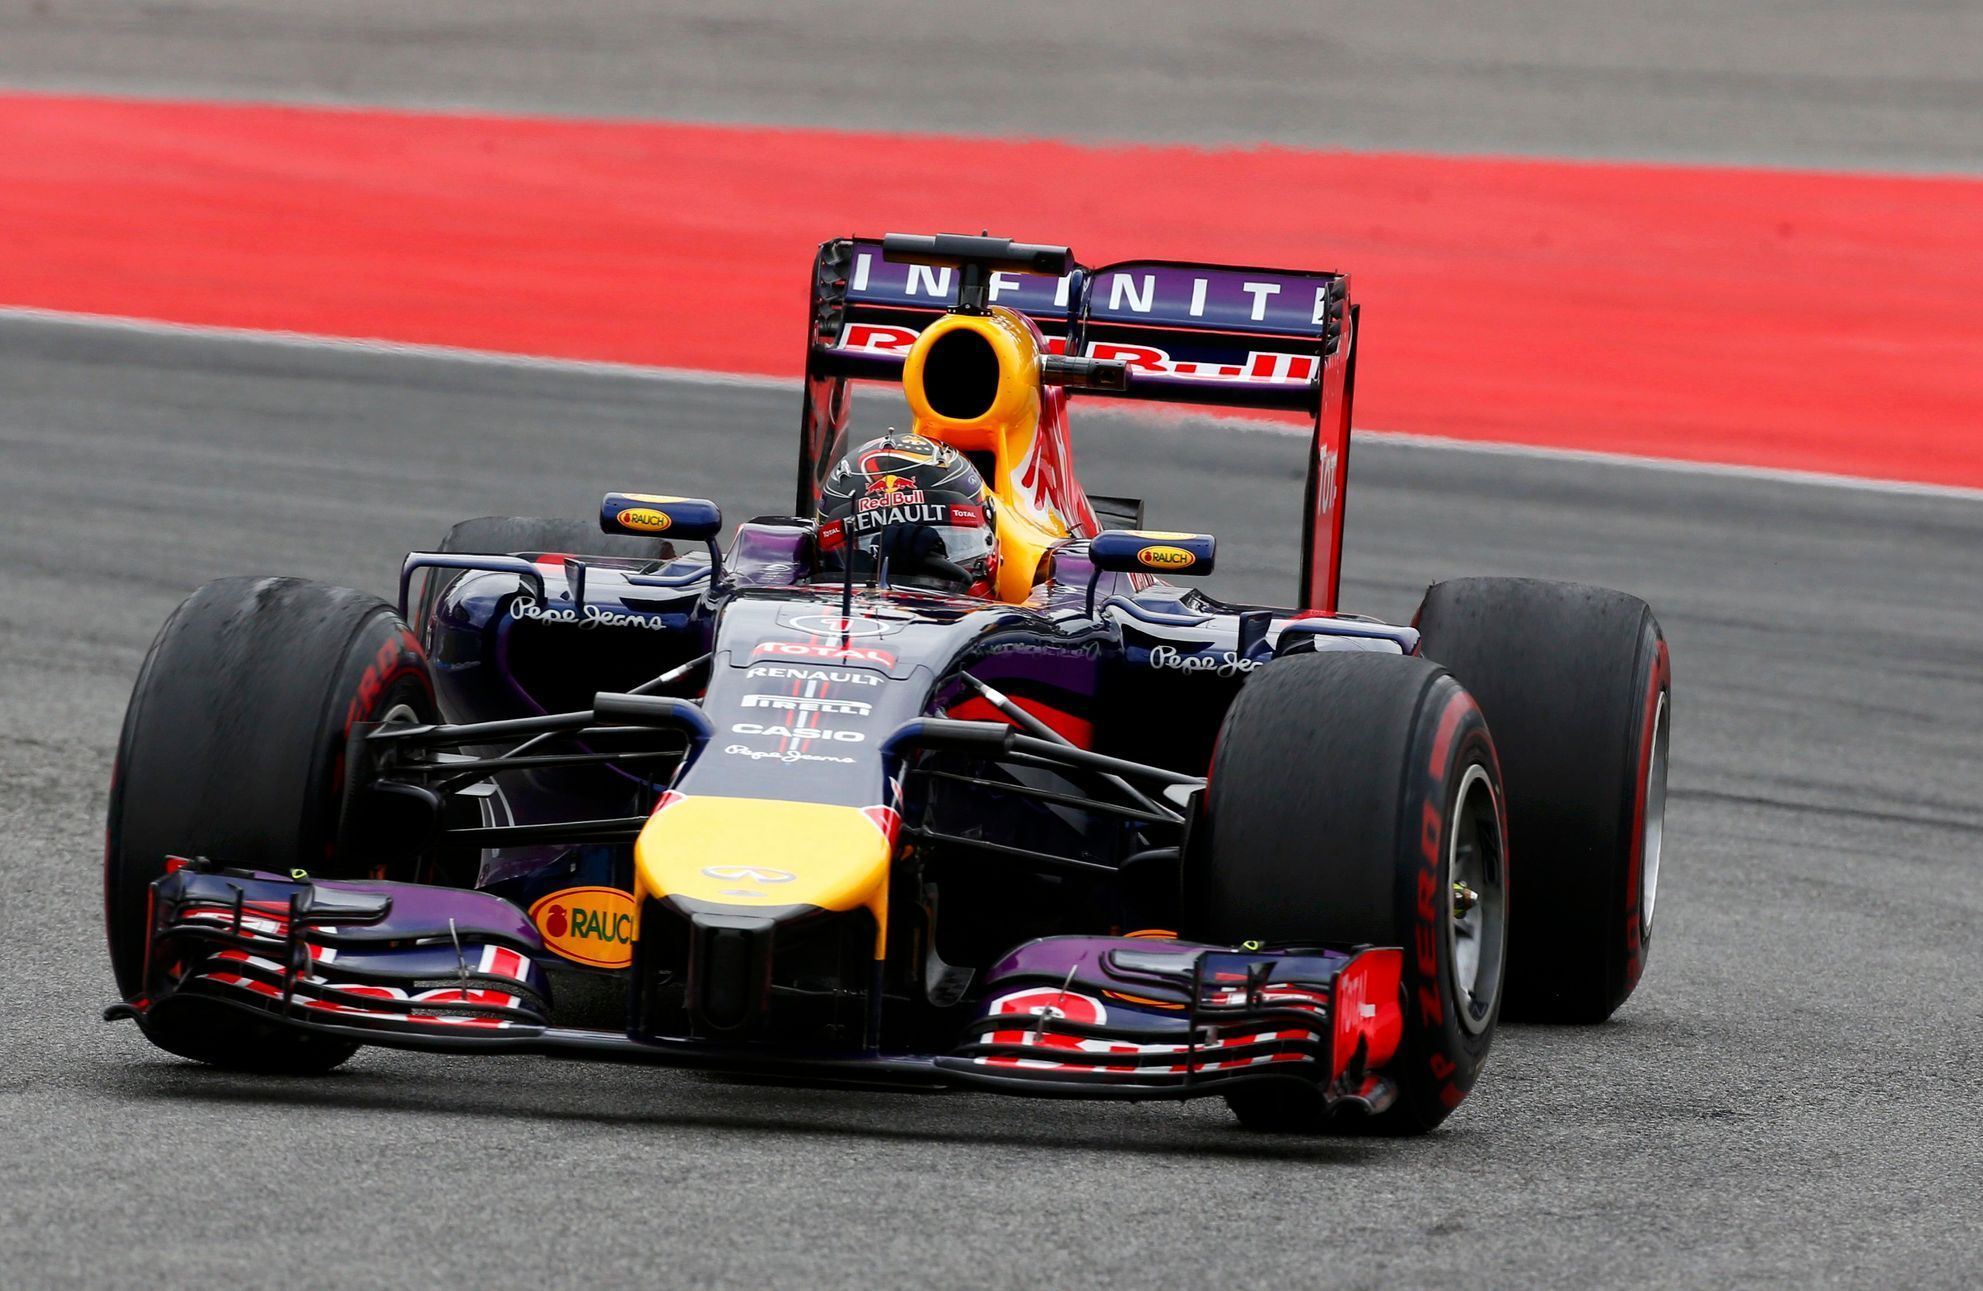 Red Bull Formula One driver Vettel drives through a corner during German F1 Grand Prix at Hockenheim